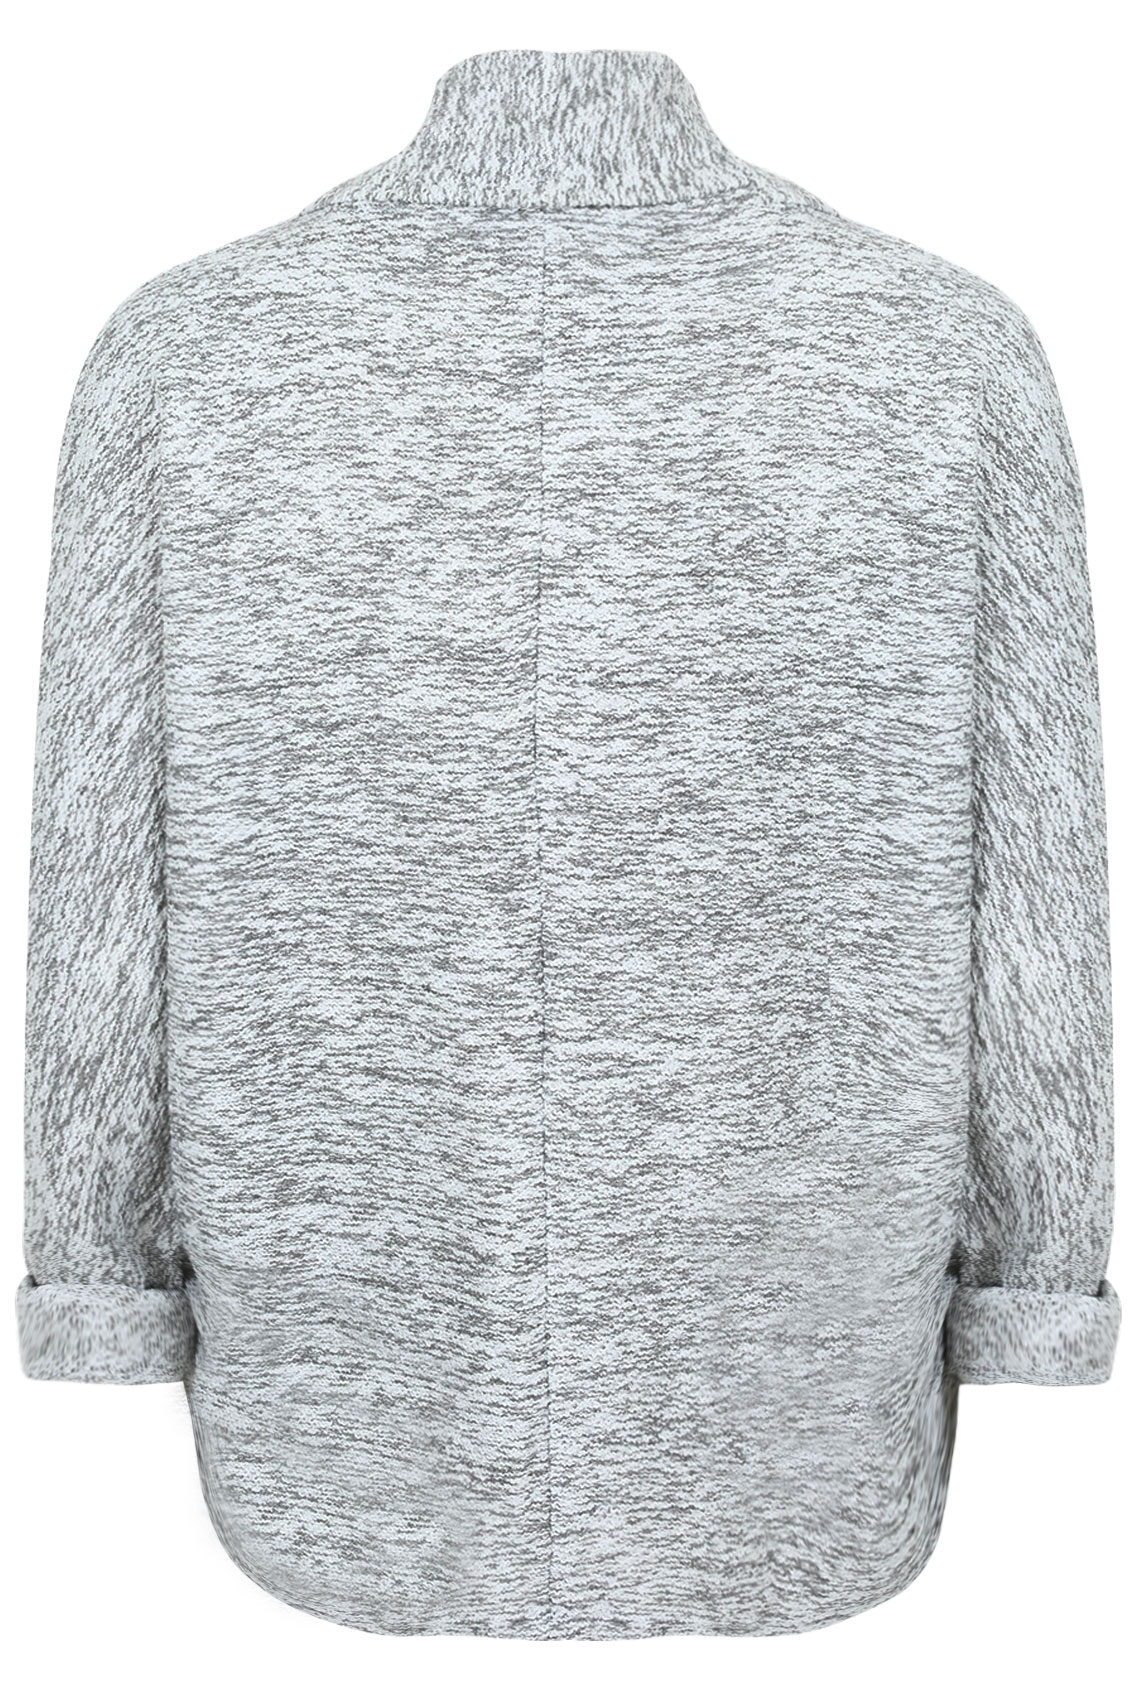 Grey White Silver Bedroom: Grey And White Boucle Boyfriend Jacket With Silver Thread